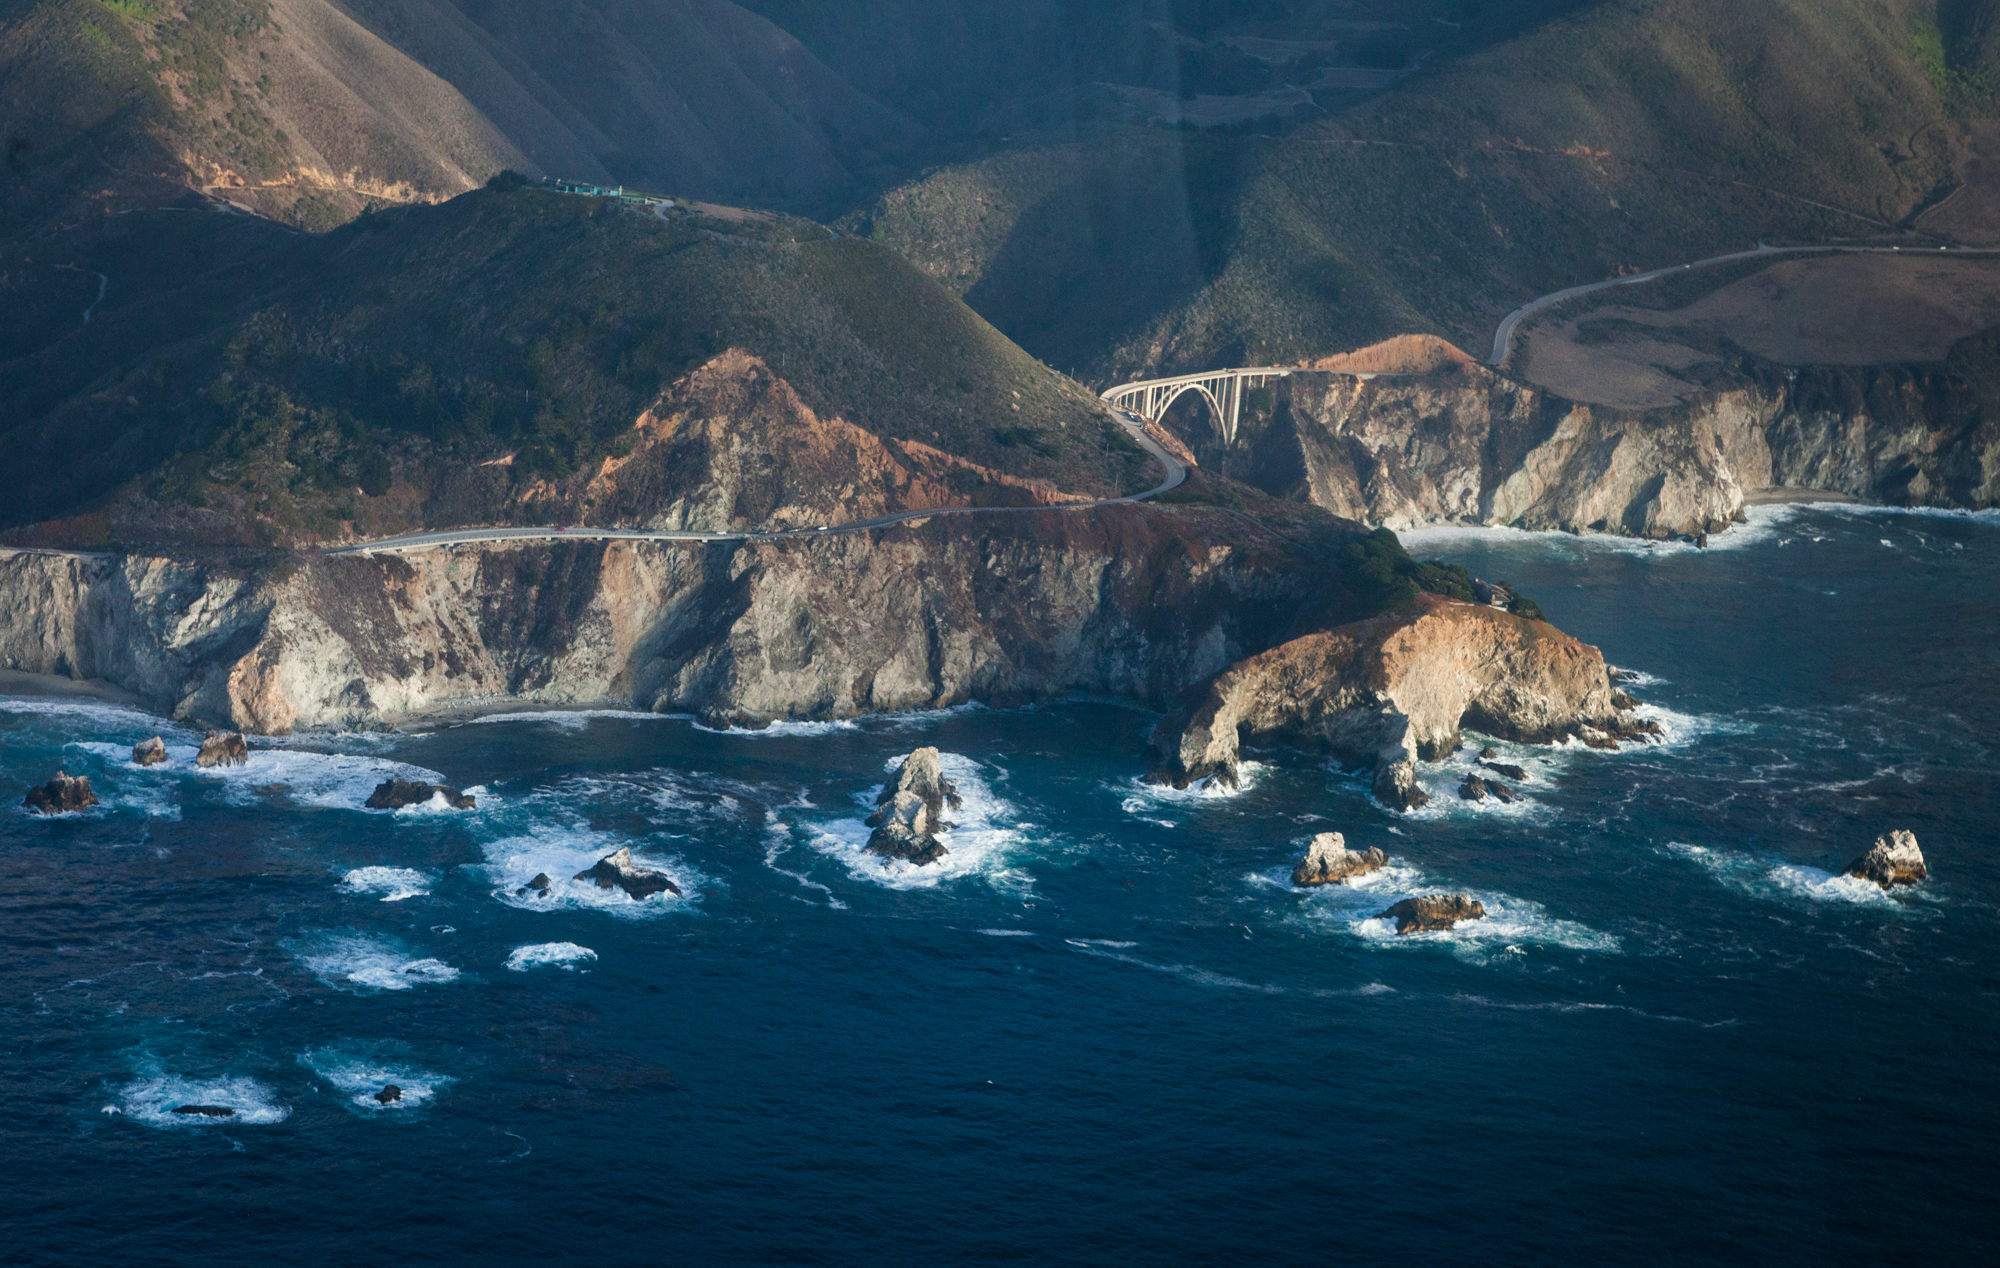 We explored California's marine protected area network up in the air in Mike Sutton's Cessna in 2015.